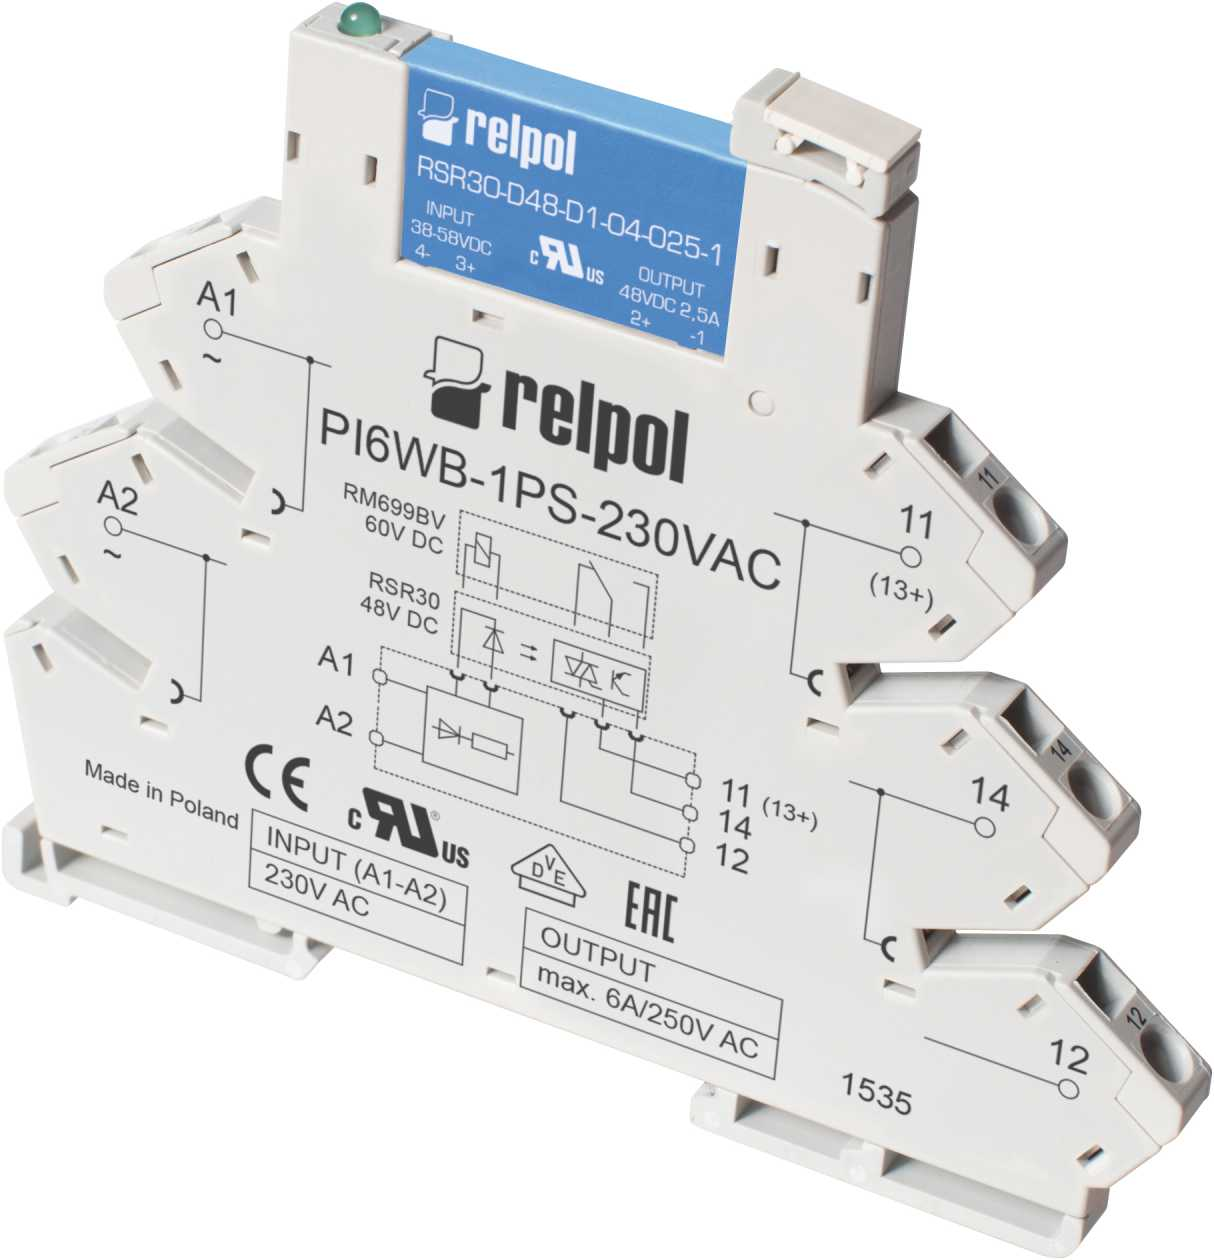 Relay Pir6wb 1ps Interface Solid State Relays Relpol Sa Dc Circuit